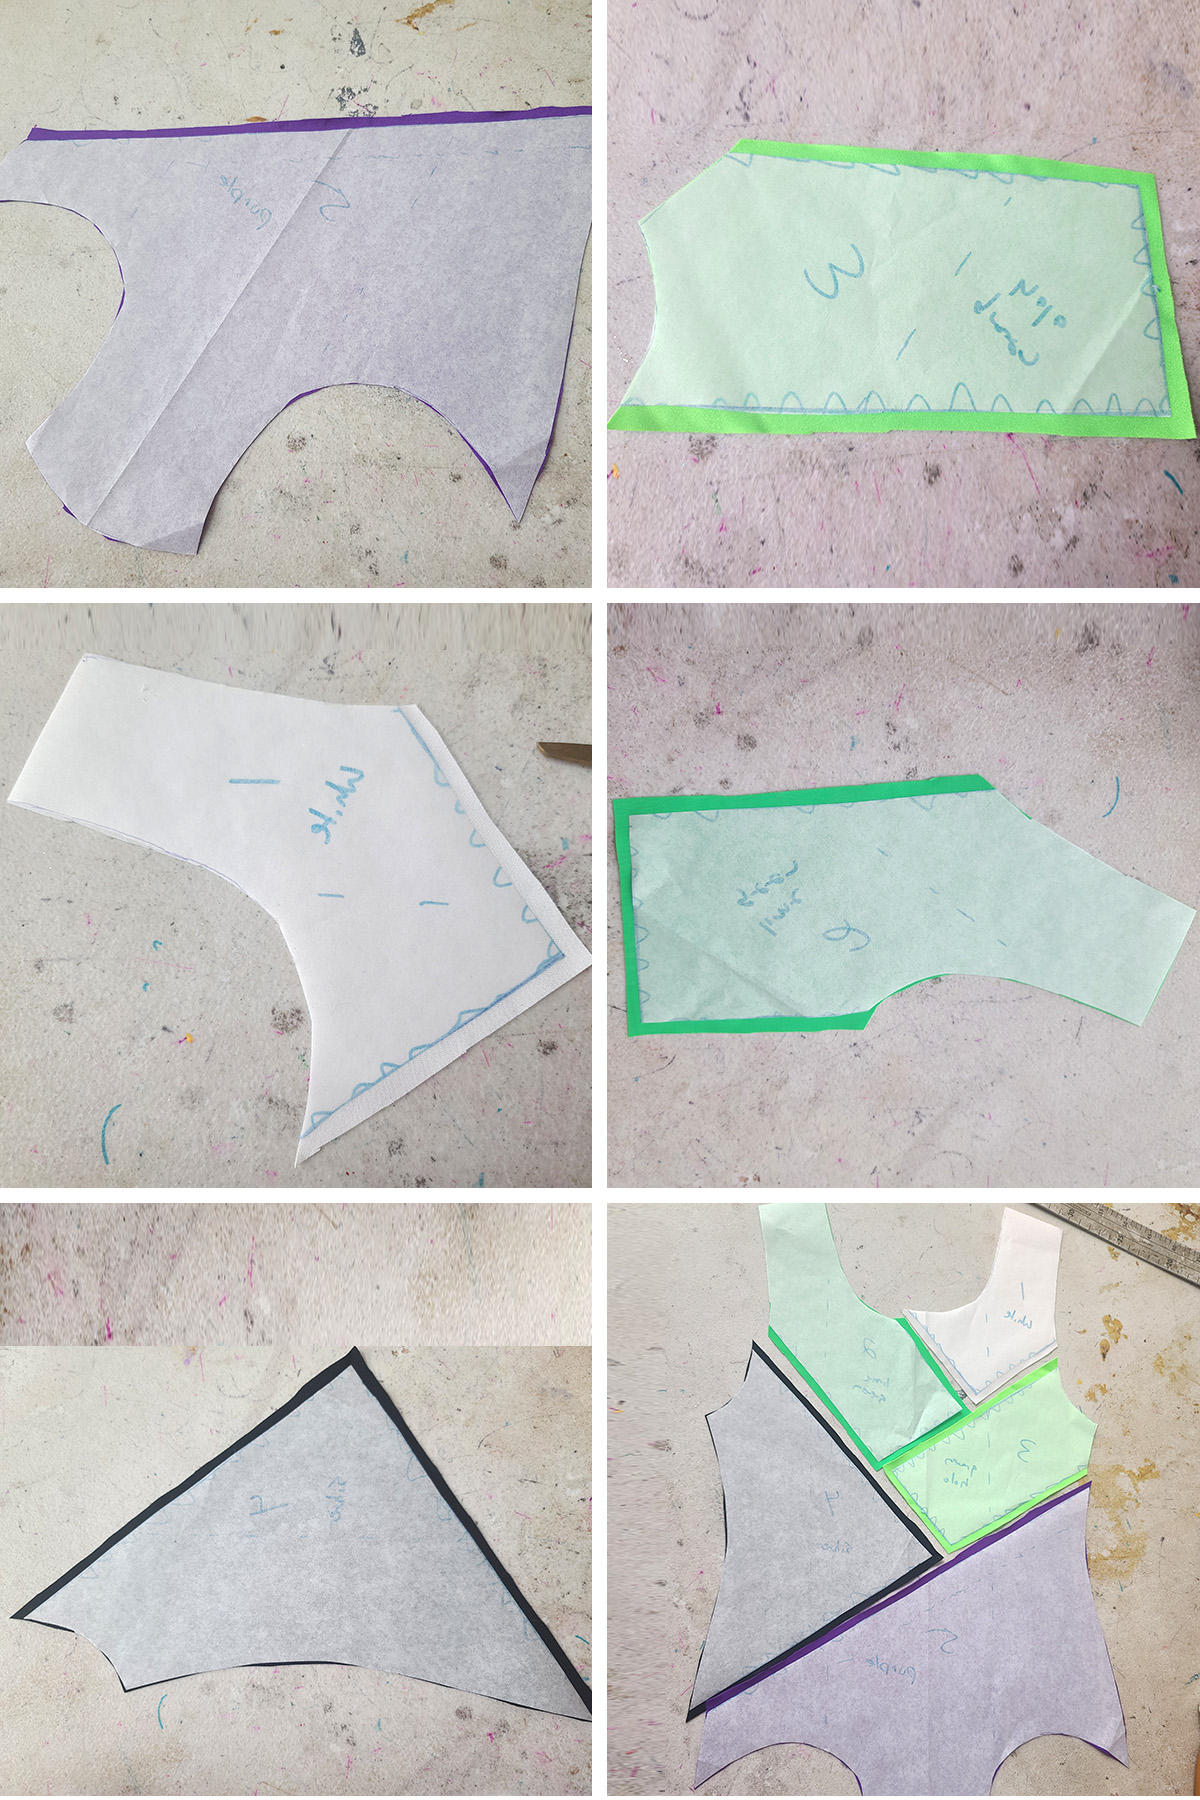 A 6 part compilation image showing the 5 pieces of leotard cut out, and finally placed together for colour blocking.